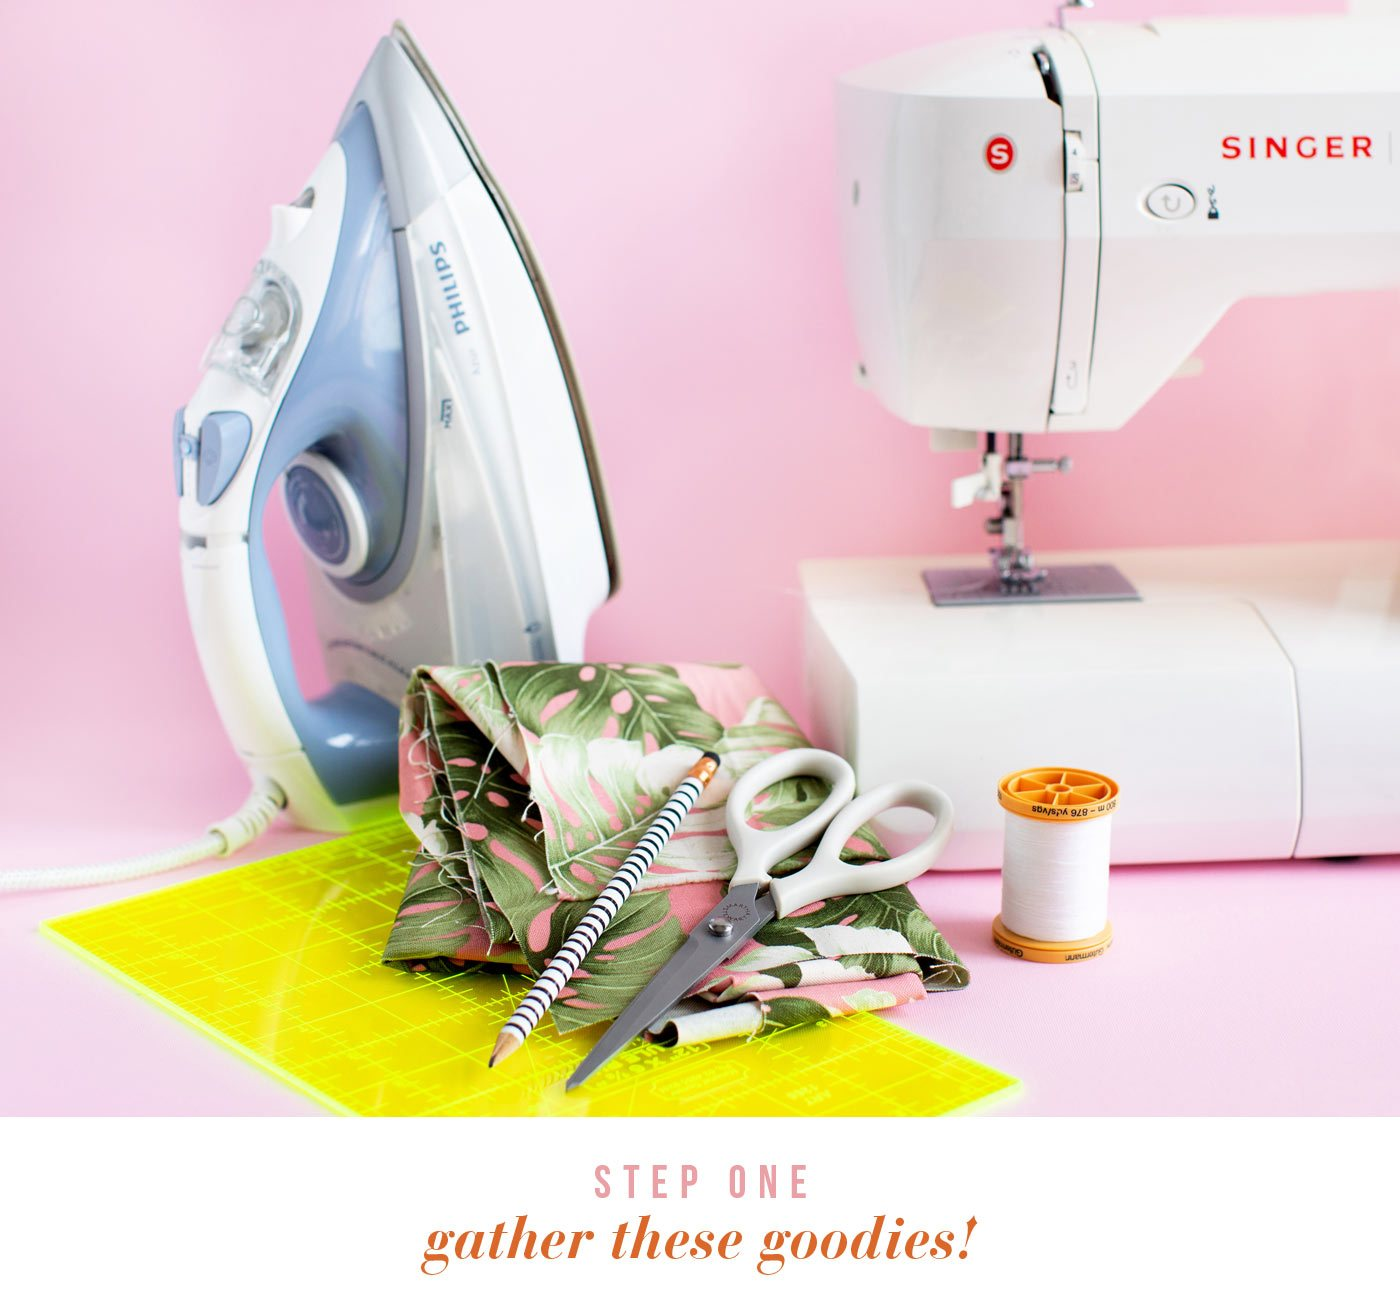 Gather these goodies! Sewing machine + thread (choose a fun colour), Iron, Ruler, Material scissors, Pencil, Material (in your favourite print)